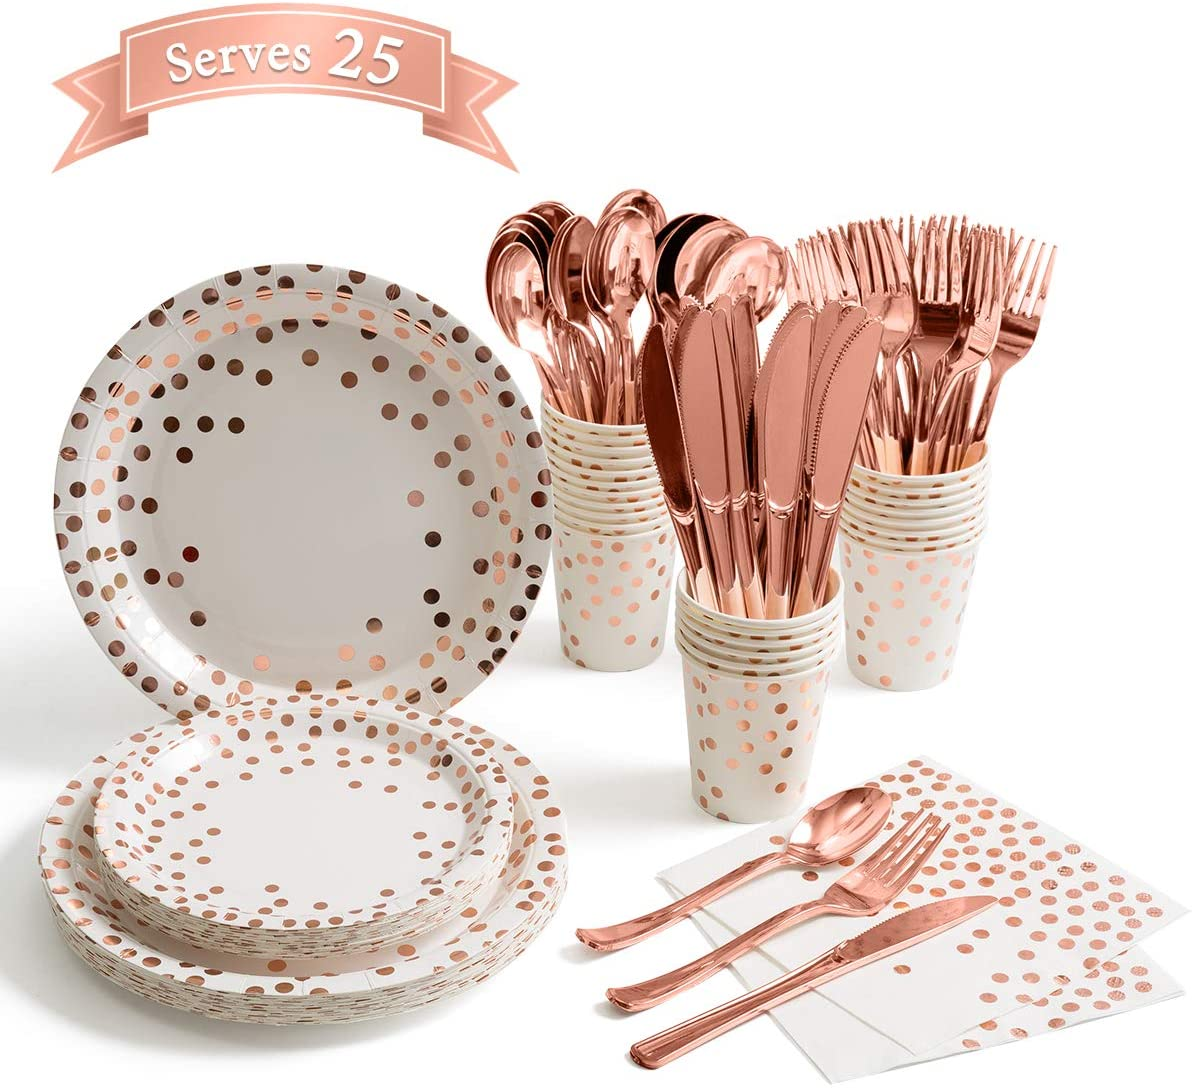 Classier: Buy Homix 175 Pieces Rose Gold Party Supplies - Rose Gold Dot on White Paper Plates and Napkins Cups Silverware Serves 25 Sets for Wedding Bridal Shower Engagement Birthday Parties